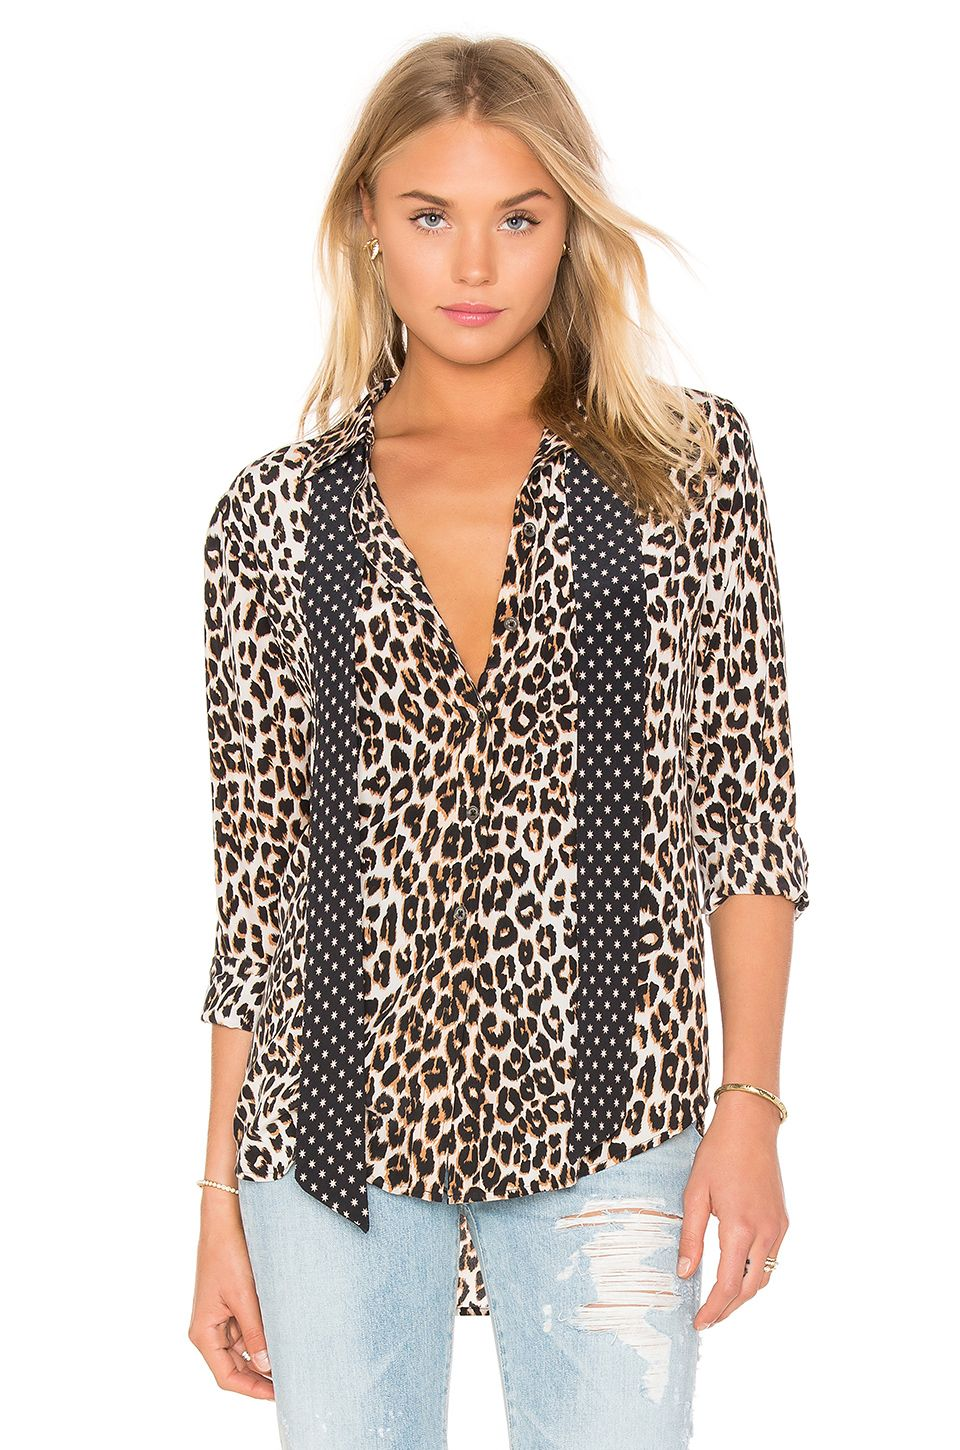 Sale Deals Find Great For Sale SHIRTS - Shirts Kate Moss for Equipment 7RsgeYey